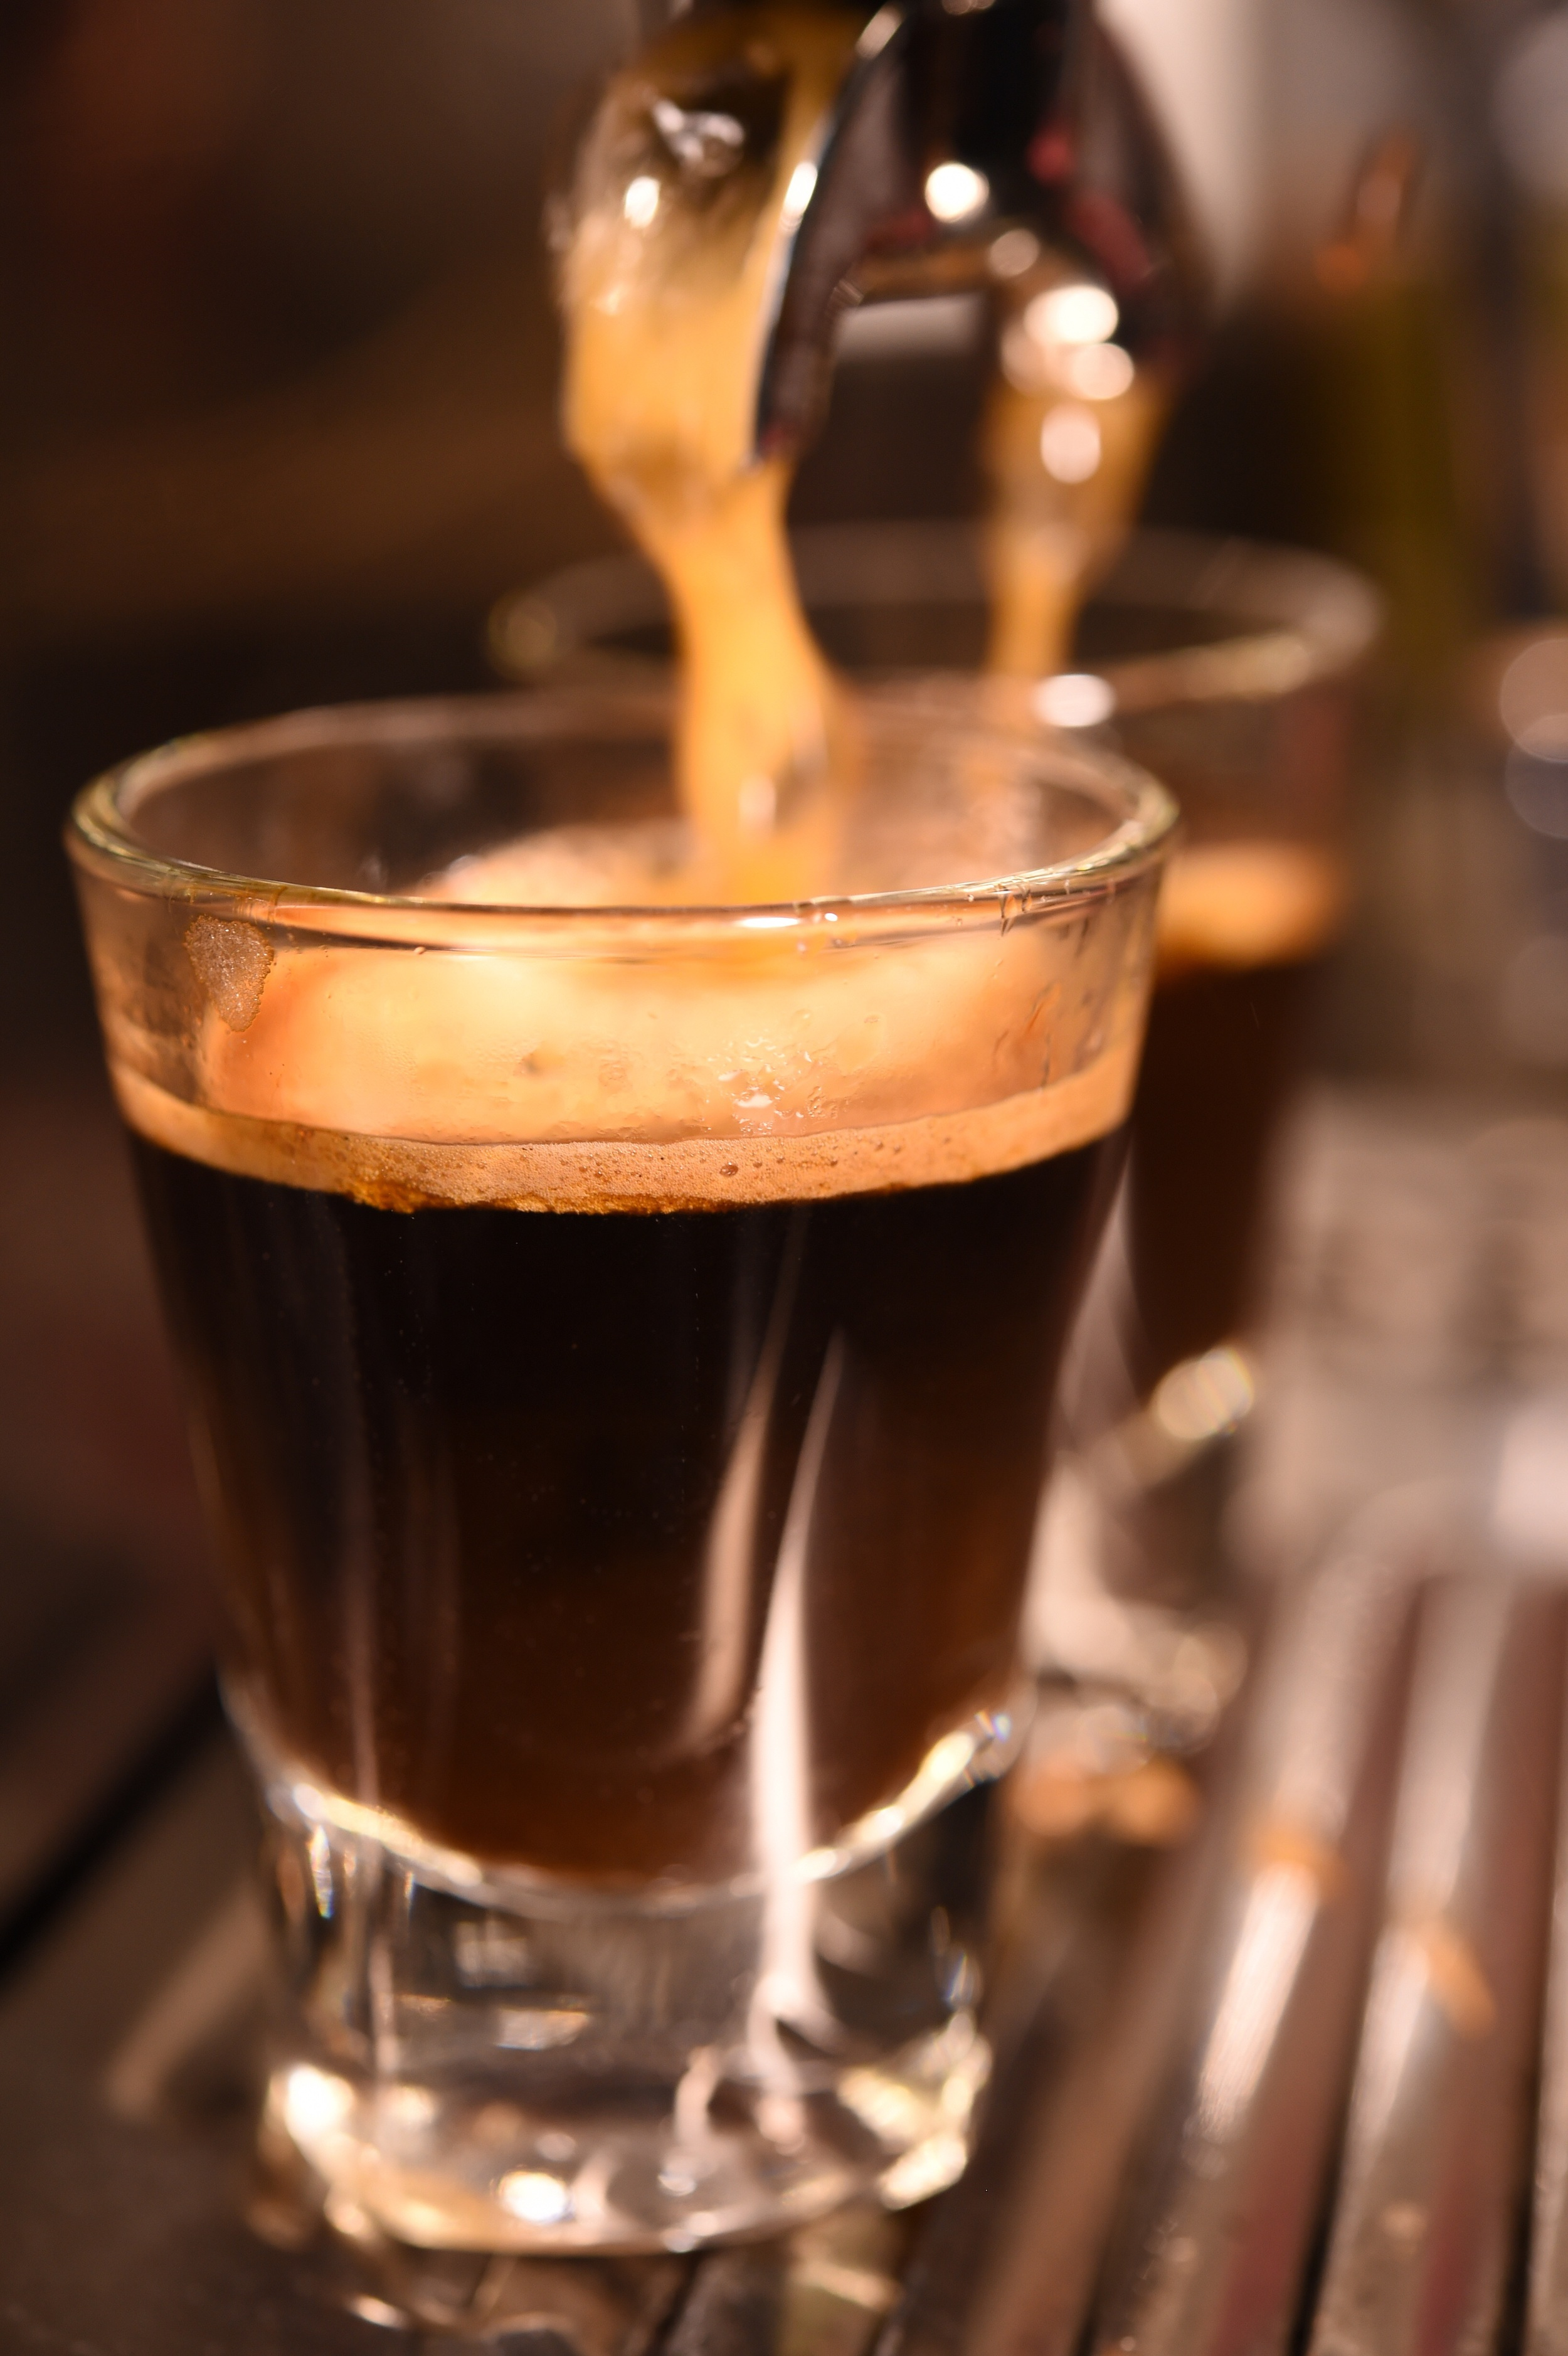 A small volume of liquid and concentrated coffee that has been extracted under pressure defines an espresso